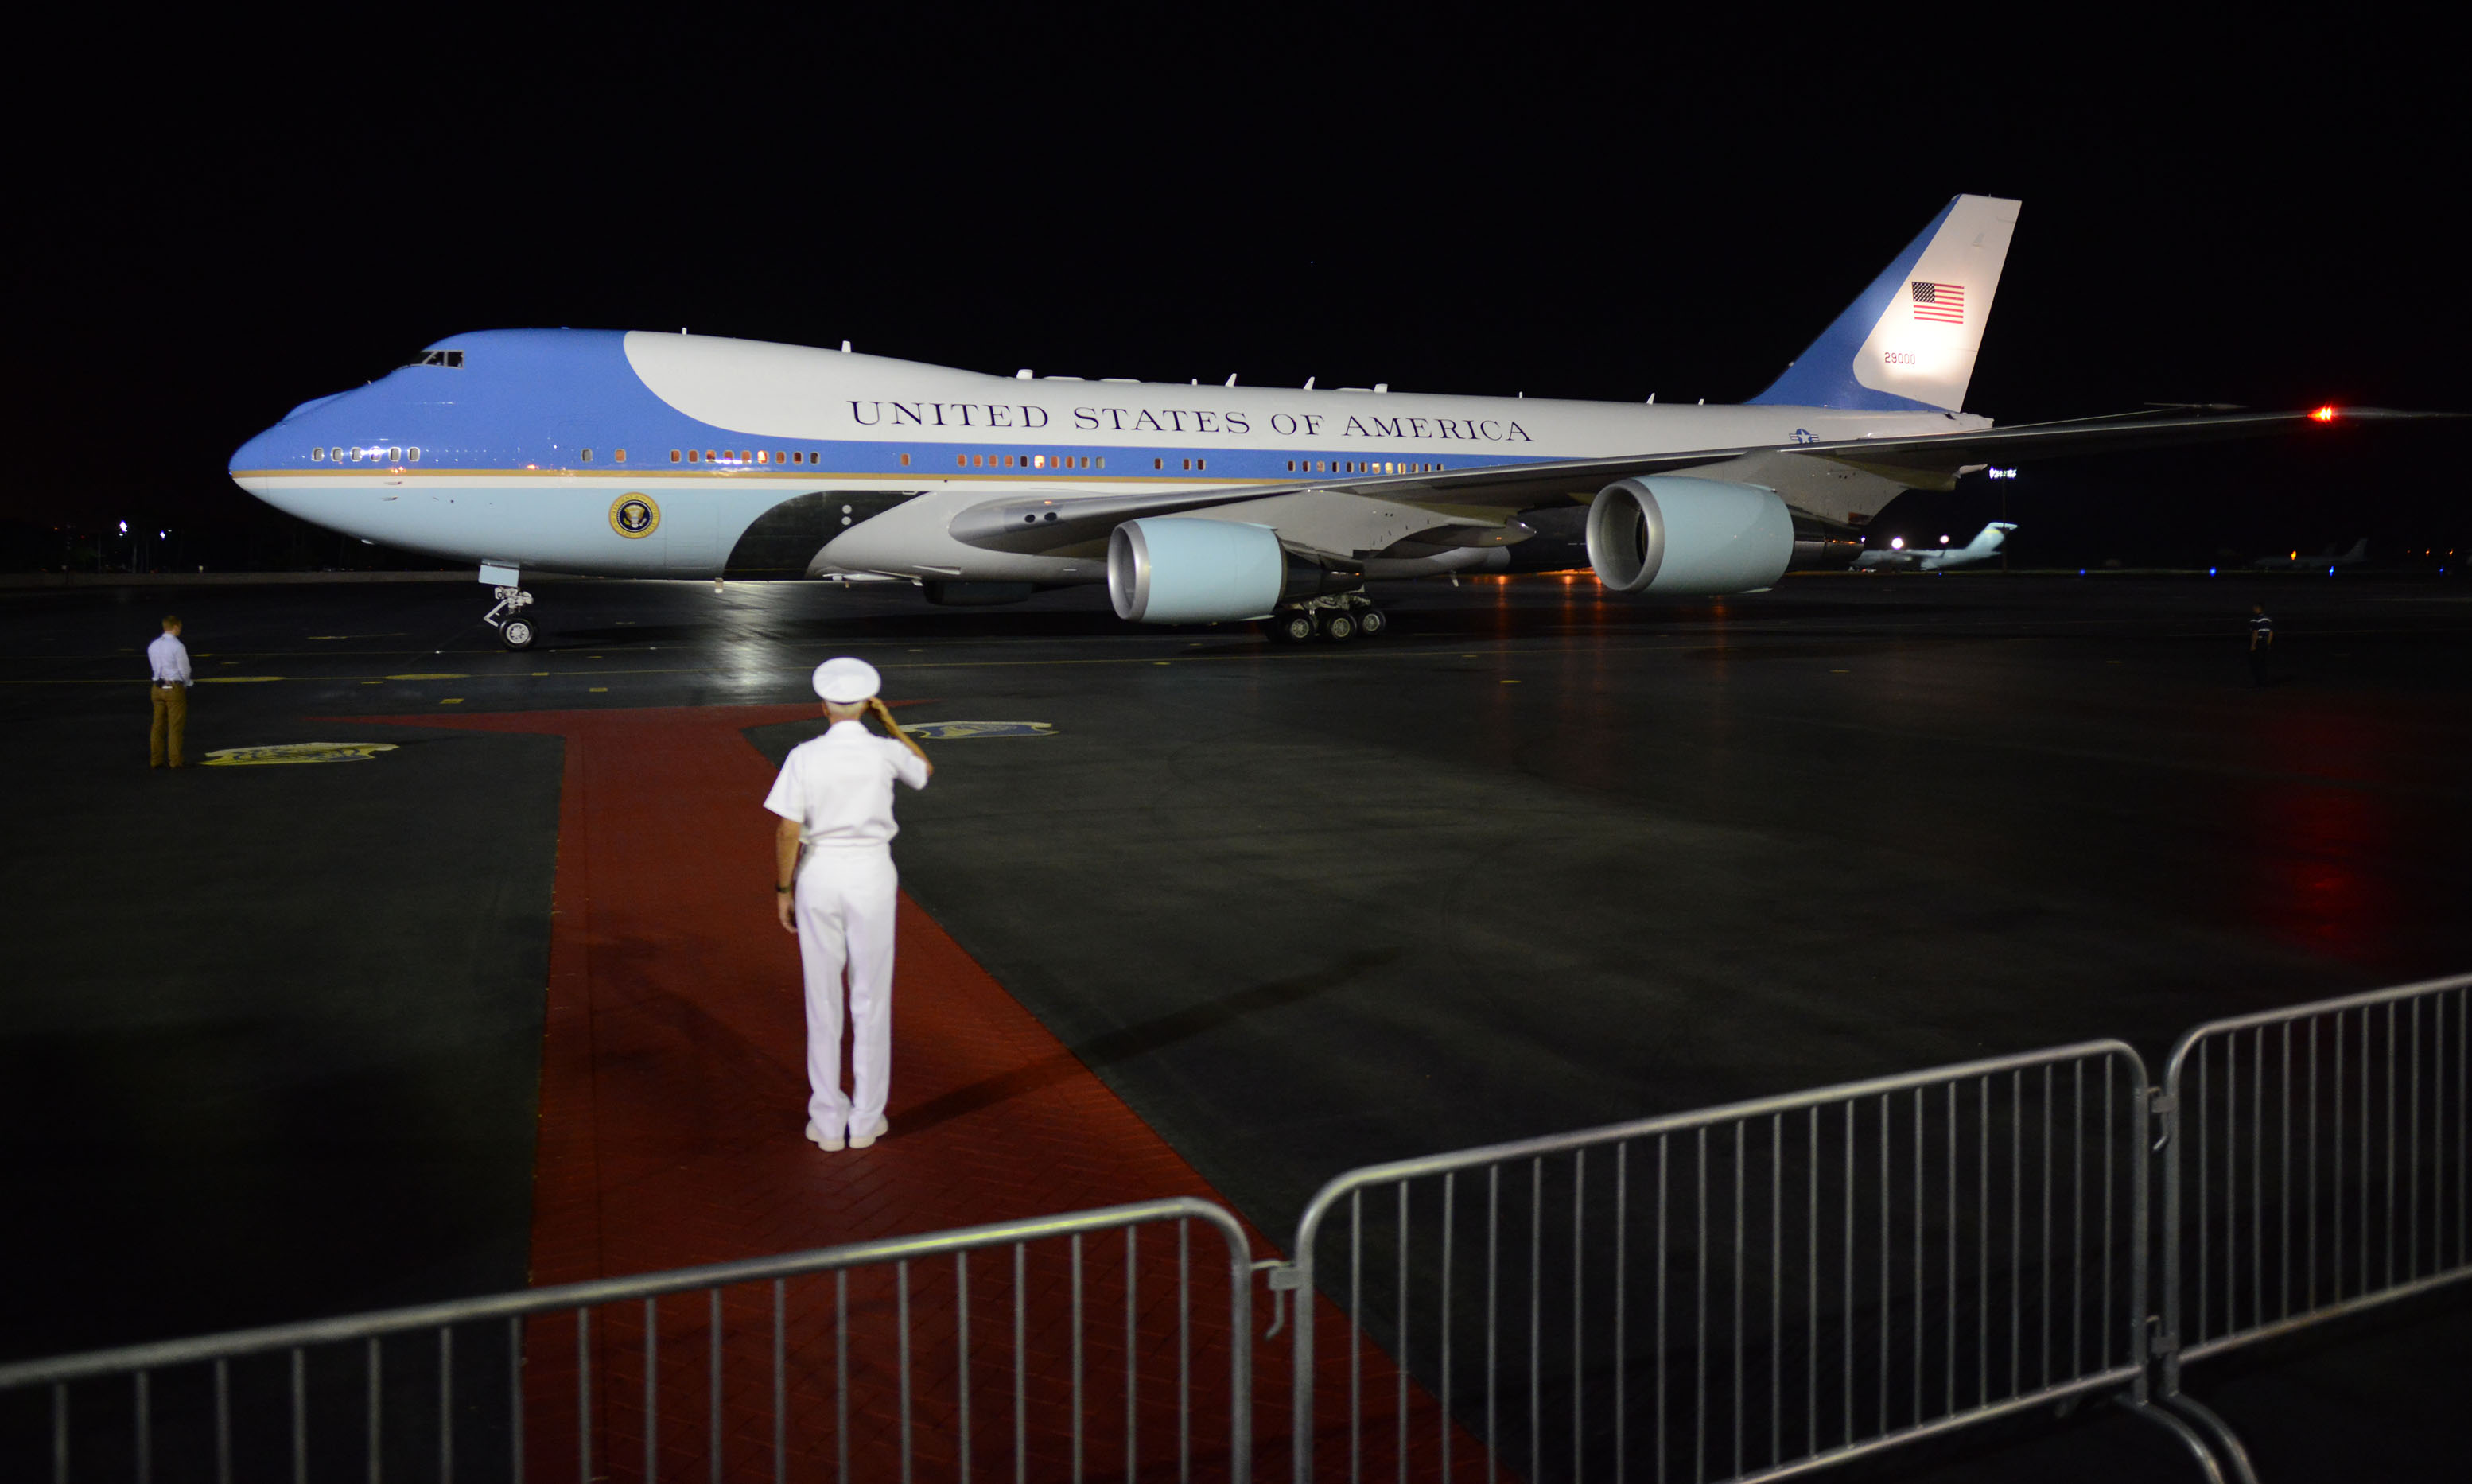 Admiral Samuel Locklear III, commander of U.S. Pacific Command, salutes as Air Force One arrives.